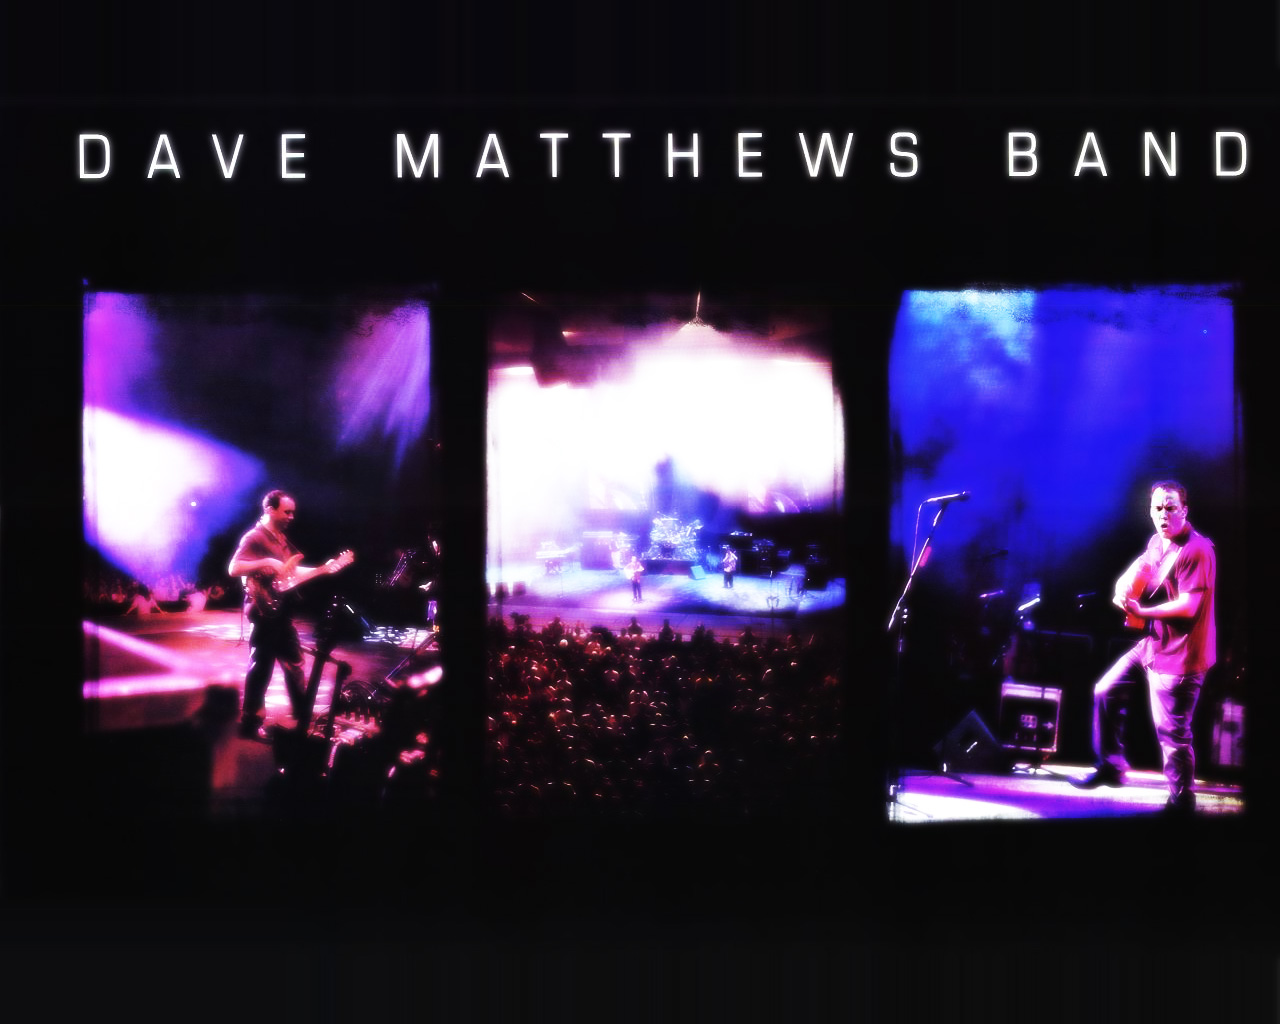 Dave Matthews Band Wallpaper